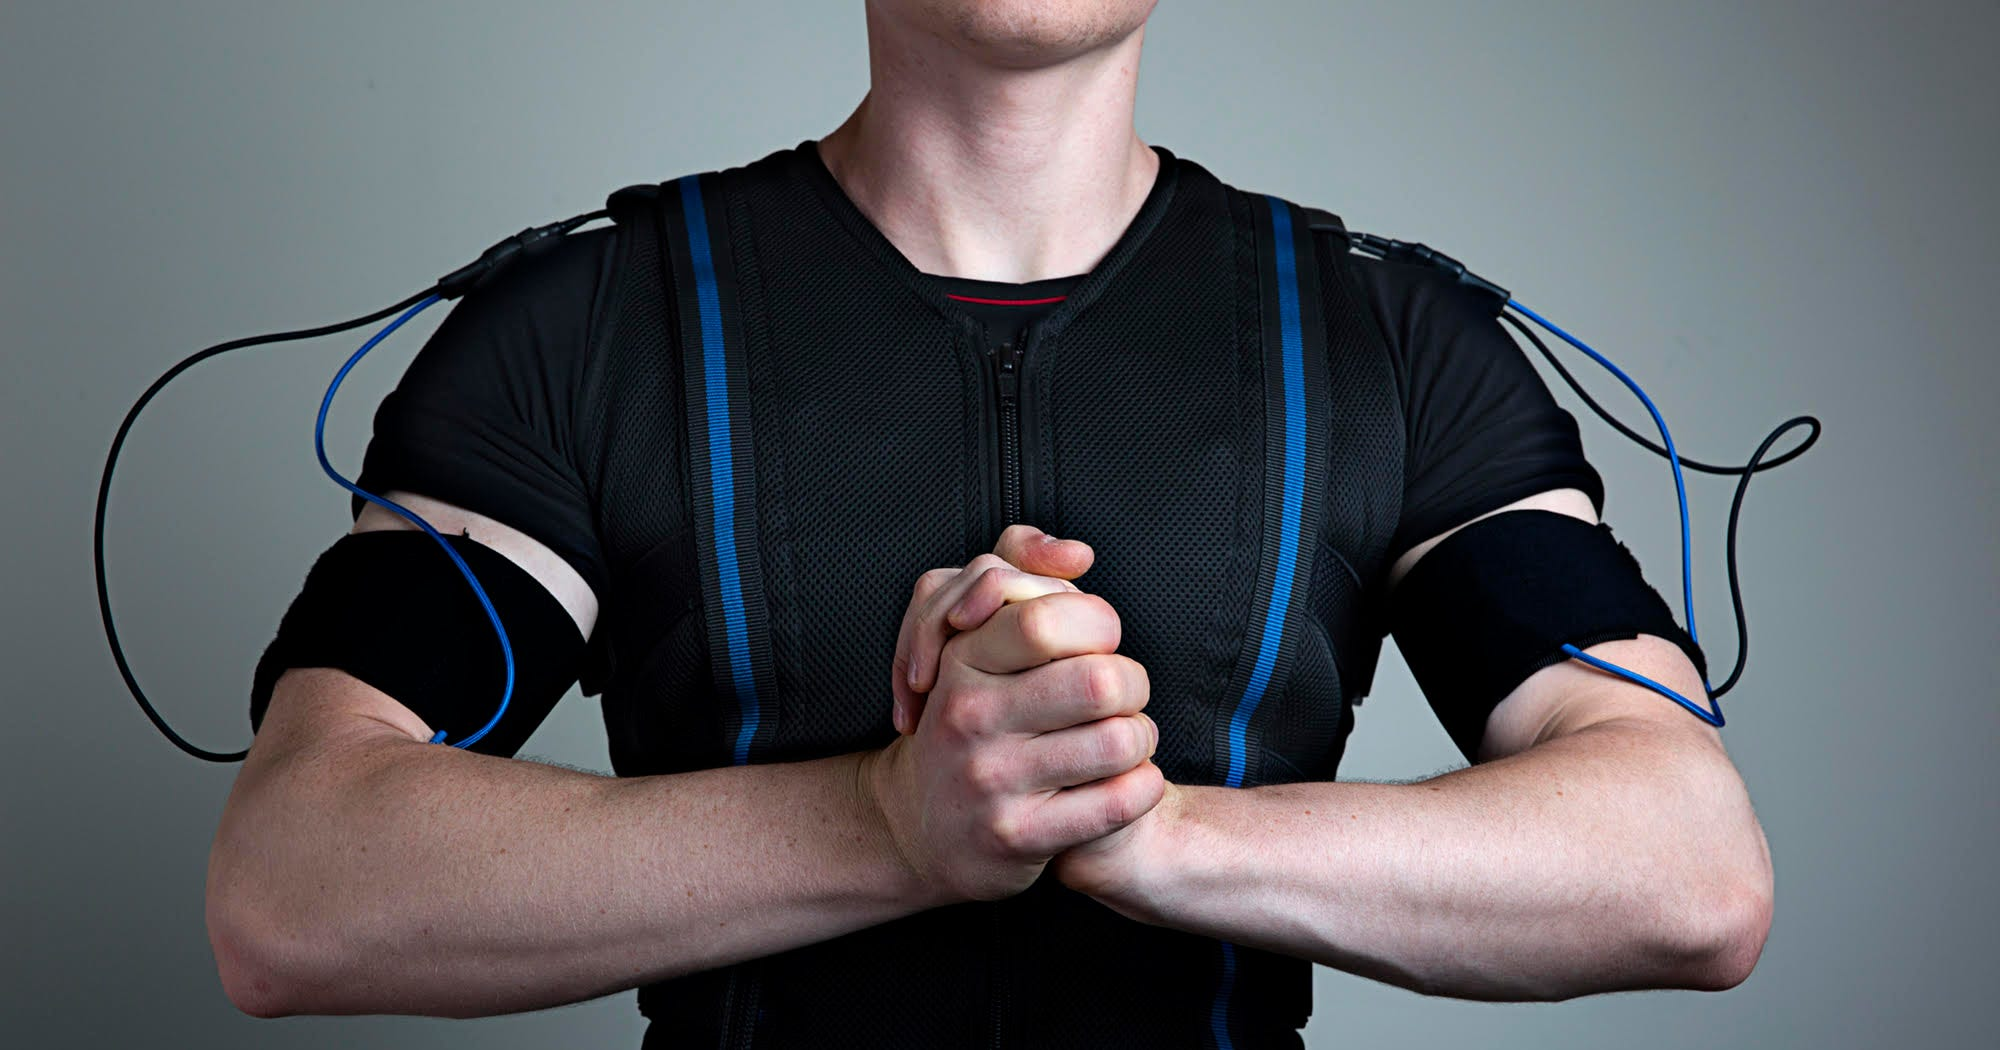 Does Ems Training Work As Muscle Stimulation Workout Cool Circuits Puts Your Brain To The Test